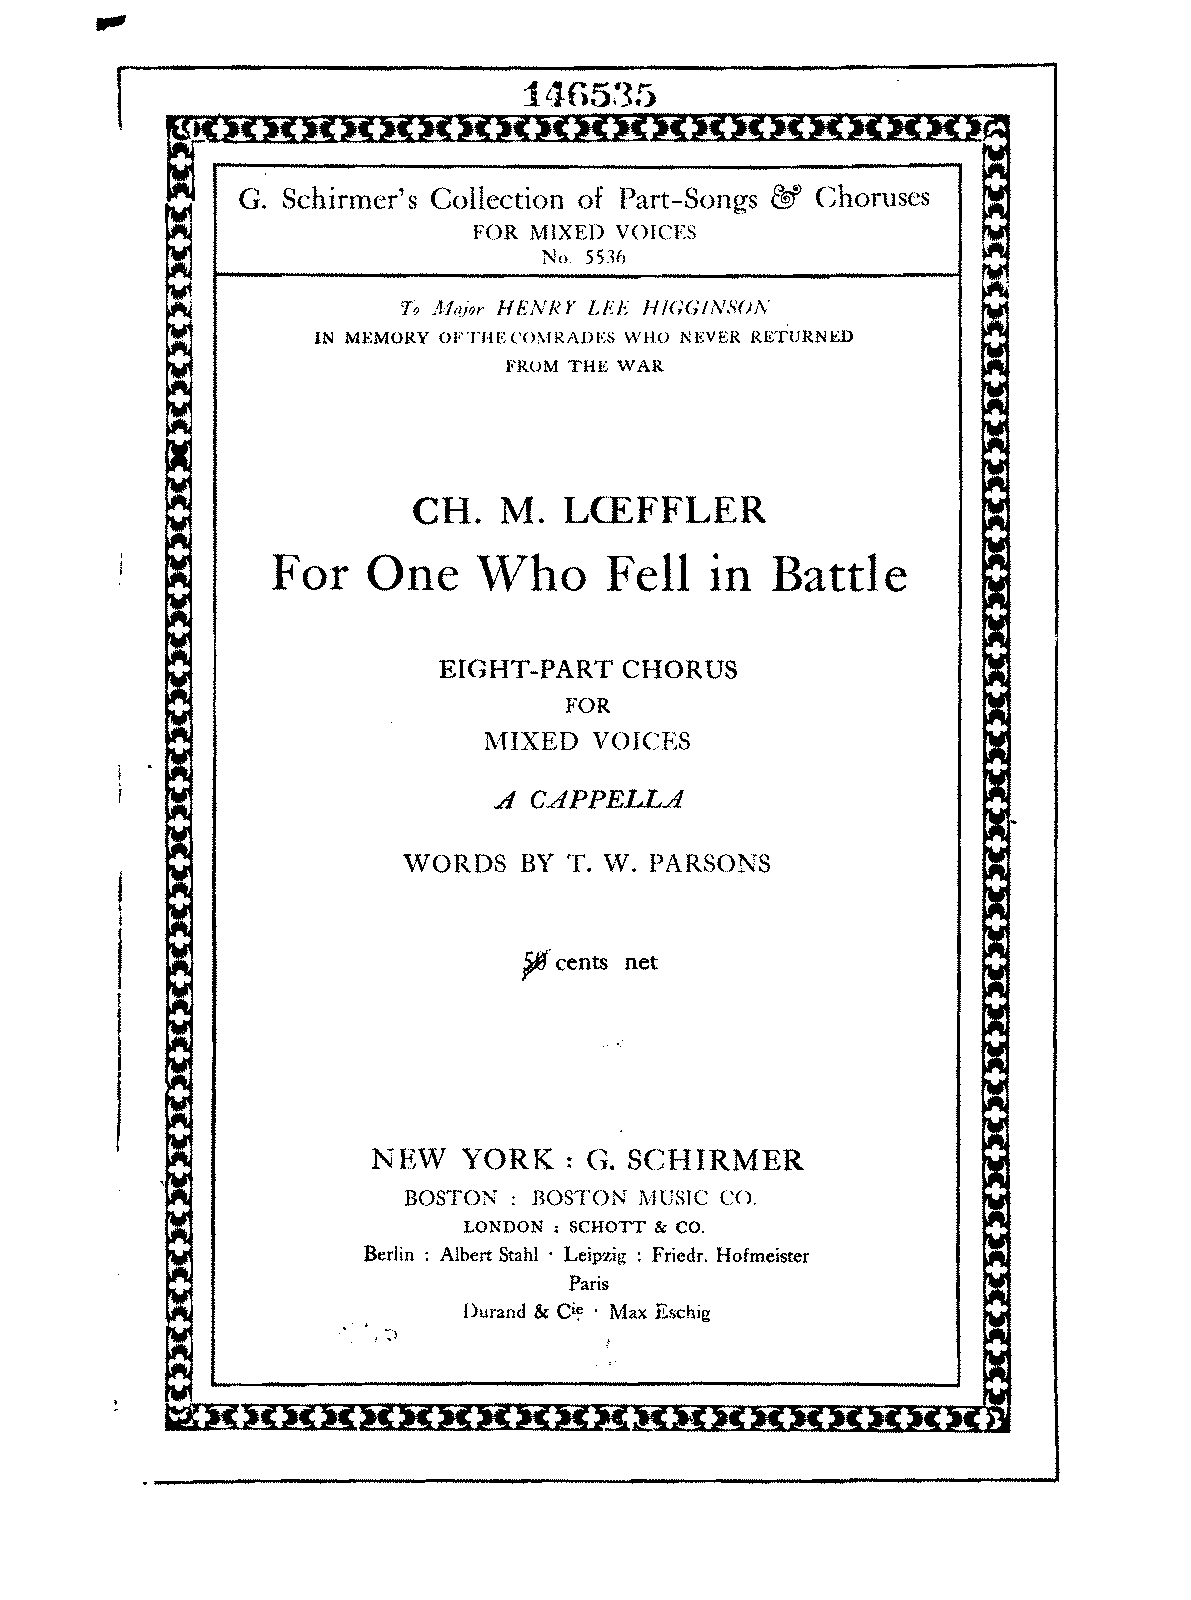 Loeffler - For One Who Fell in Battle (8-part Chorus A Cappella).pdf